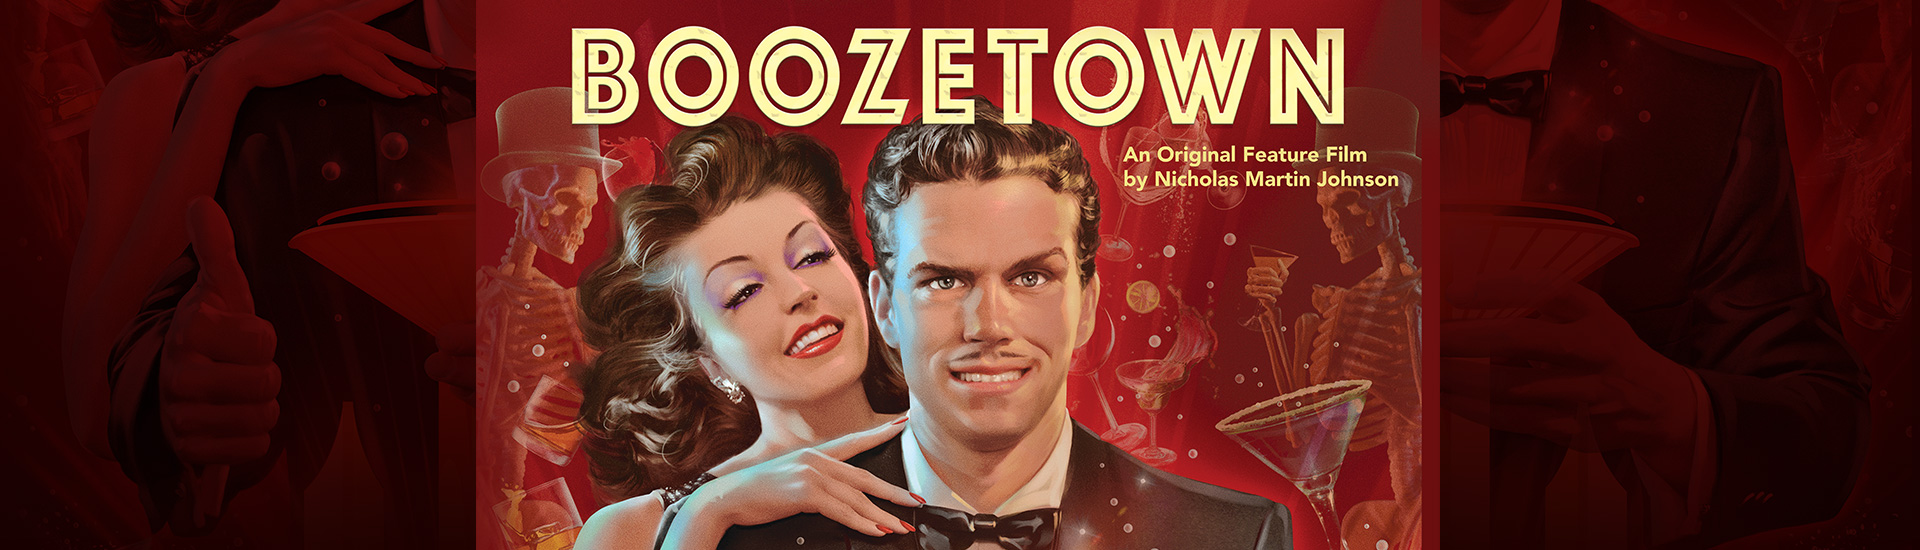 Boozetown | by Nicholas Martin Johnson